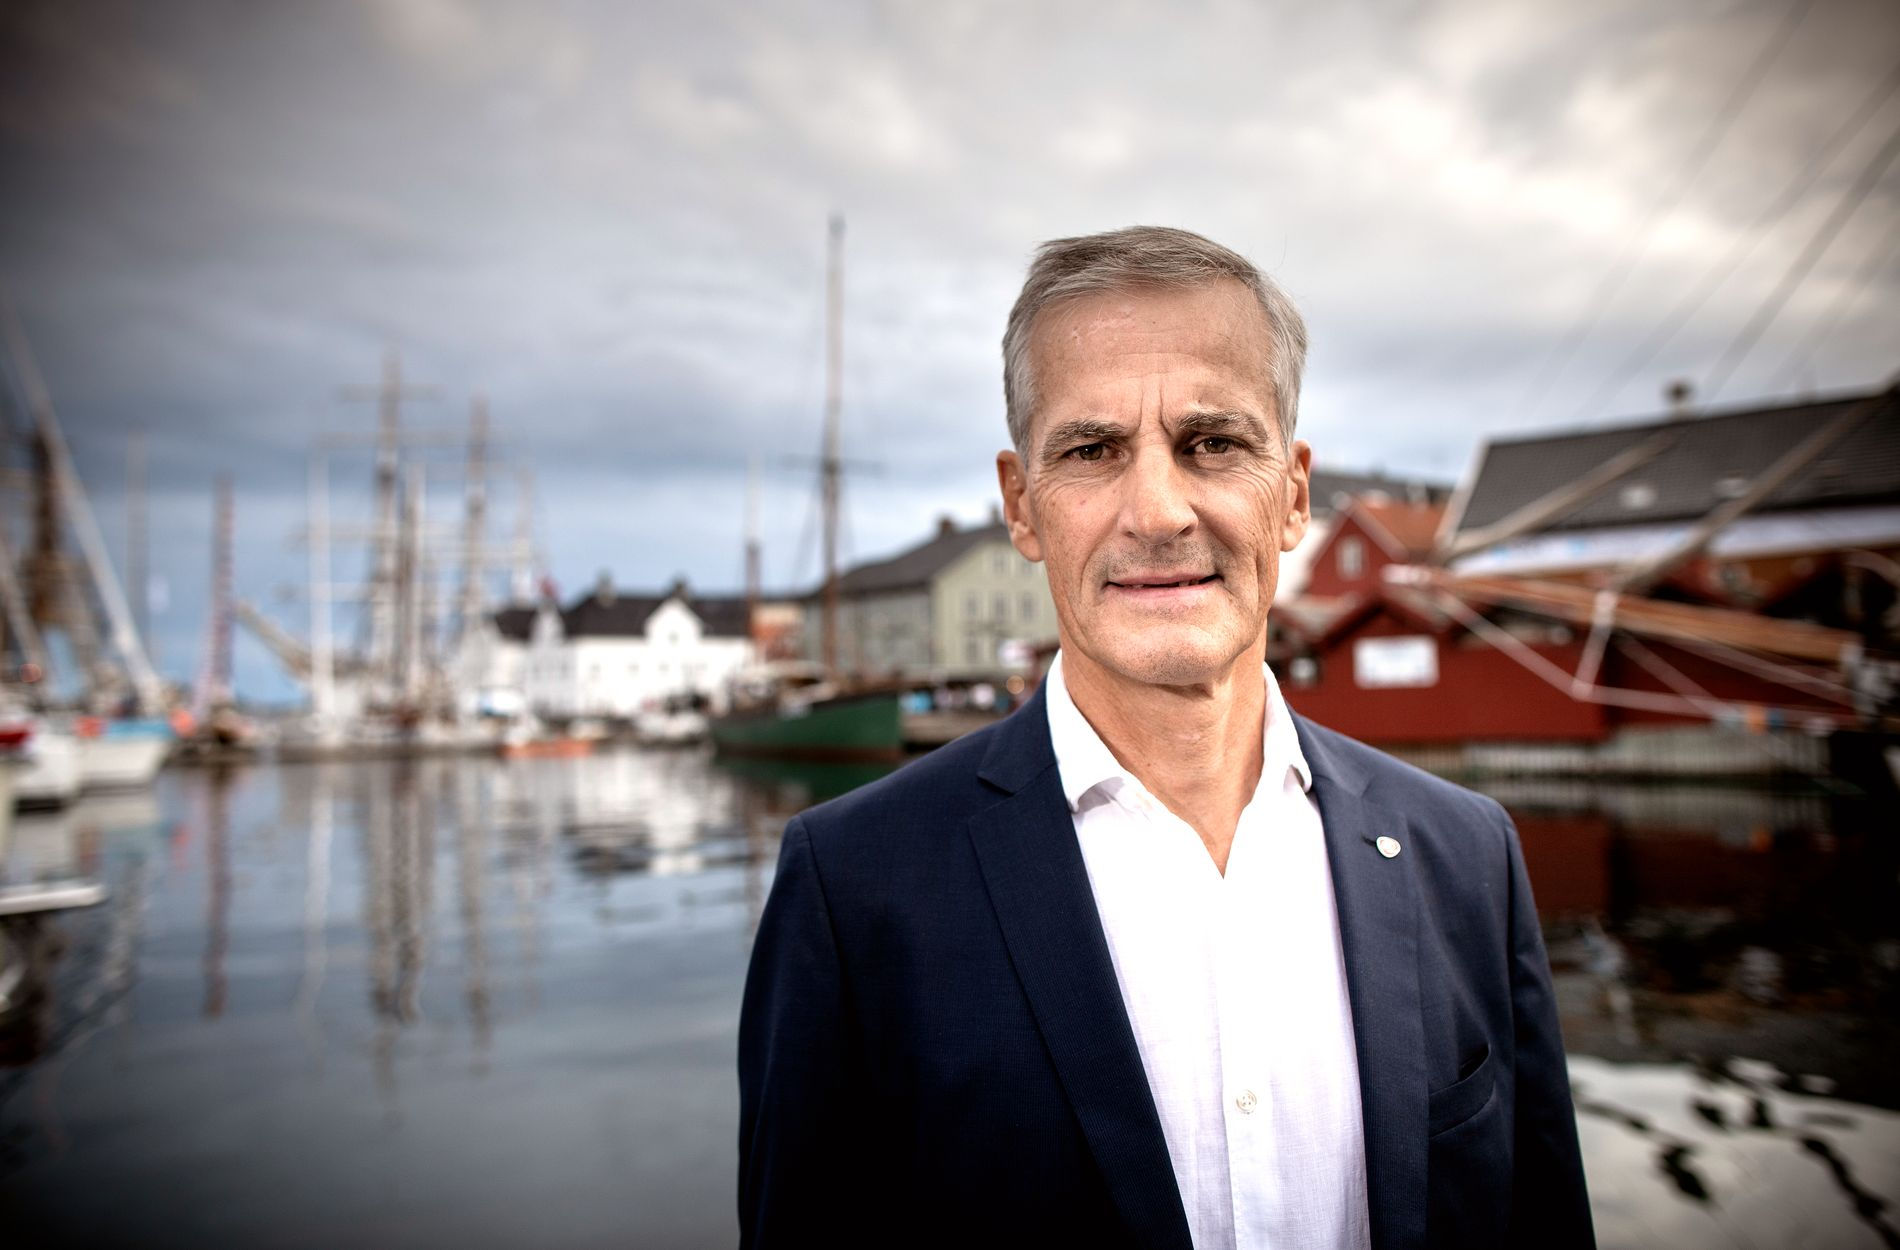 : Ap leader Jonas Gahr Støre is sorry that Finnmark is being blamed for the entire regional reform being threatened because they say no to a merger with Troms.